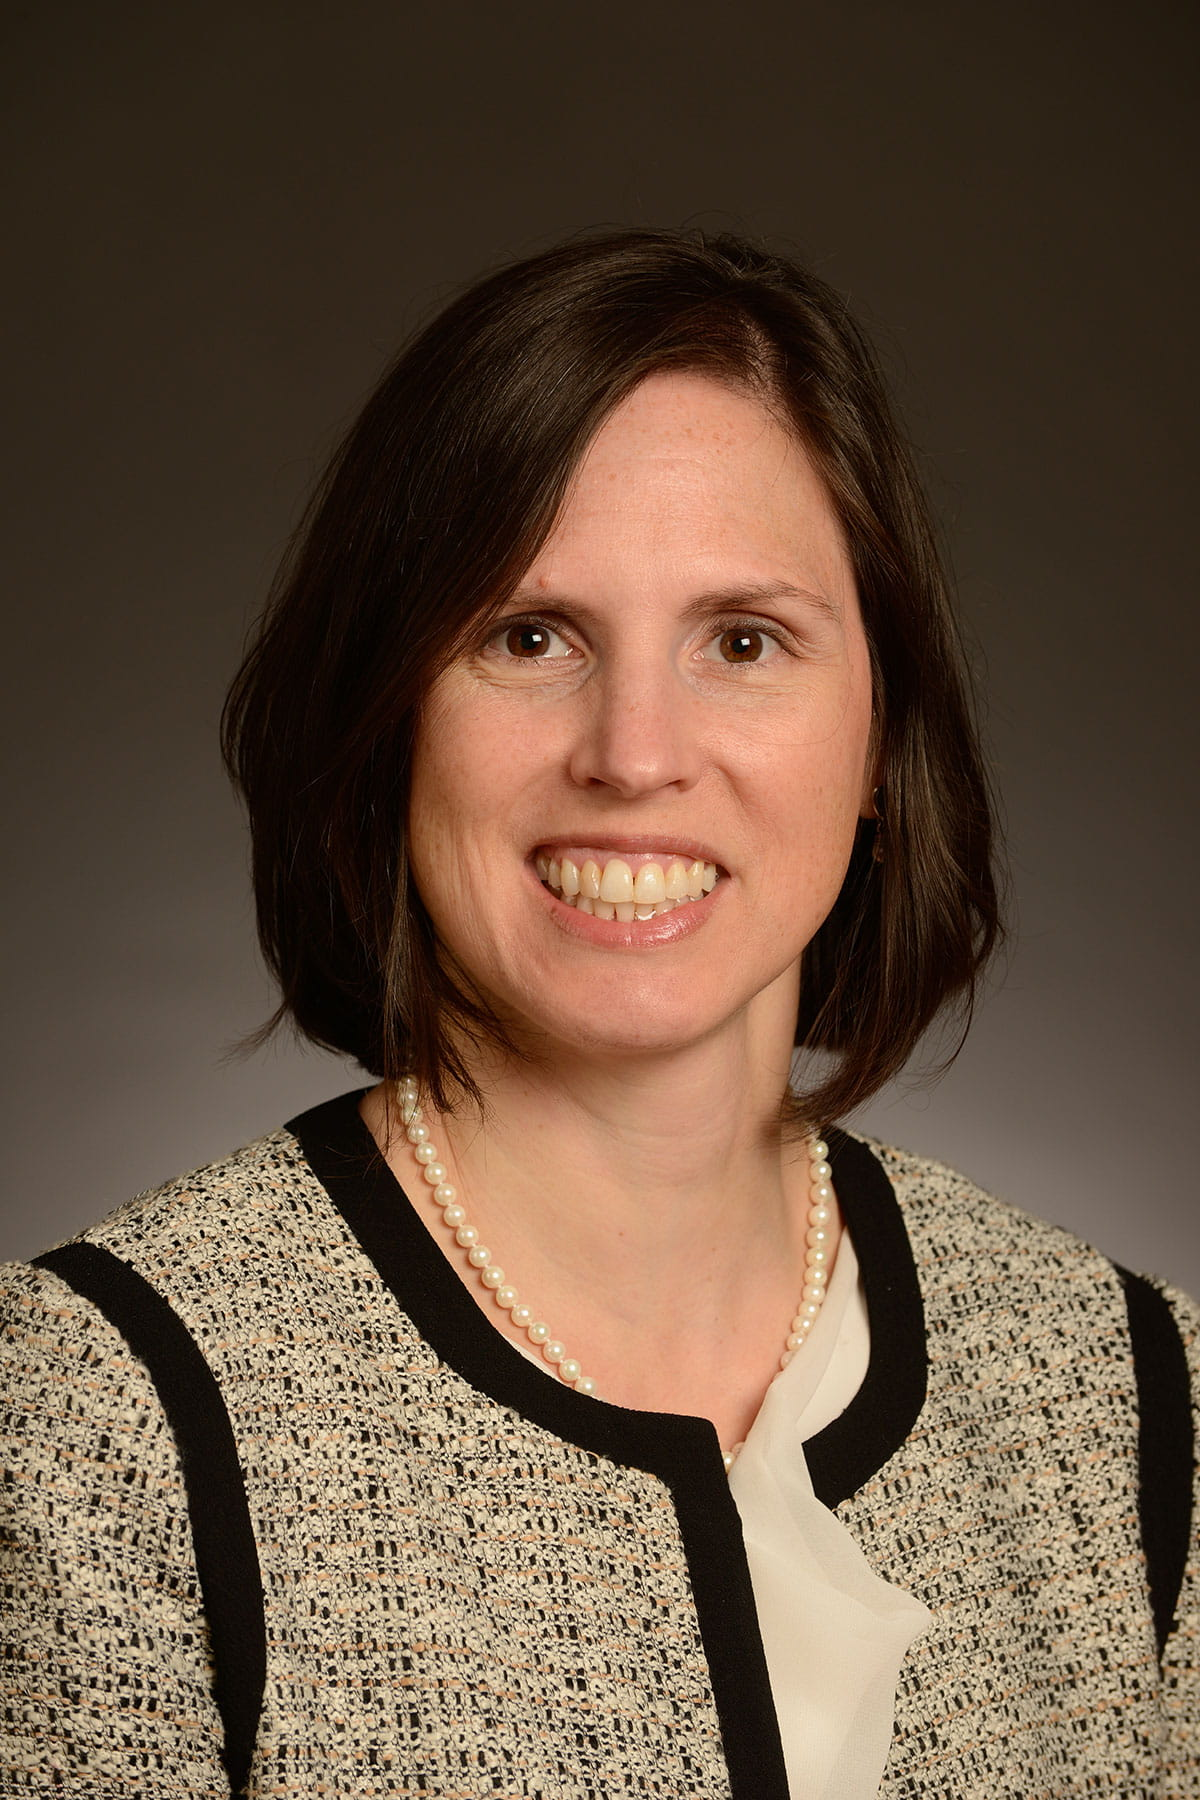 A photo of Allison A. Divanovic, MD.